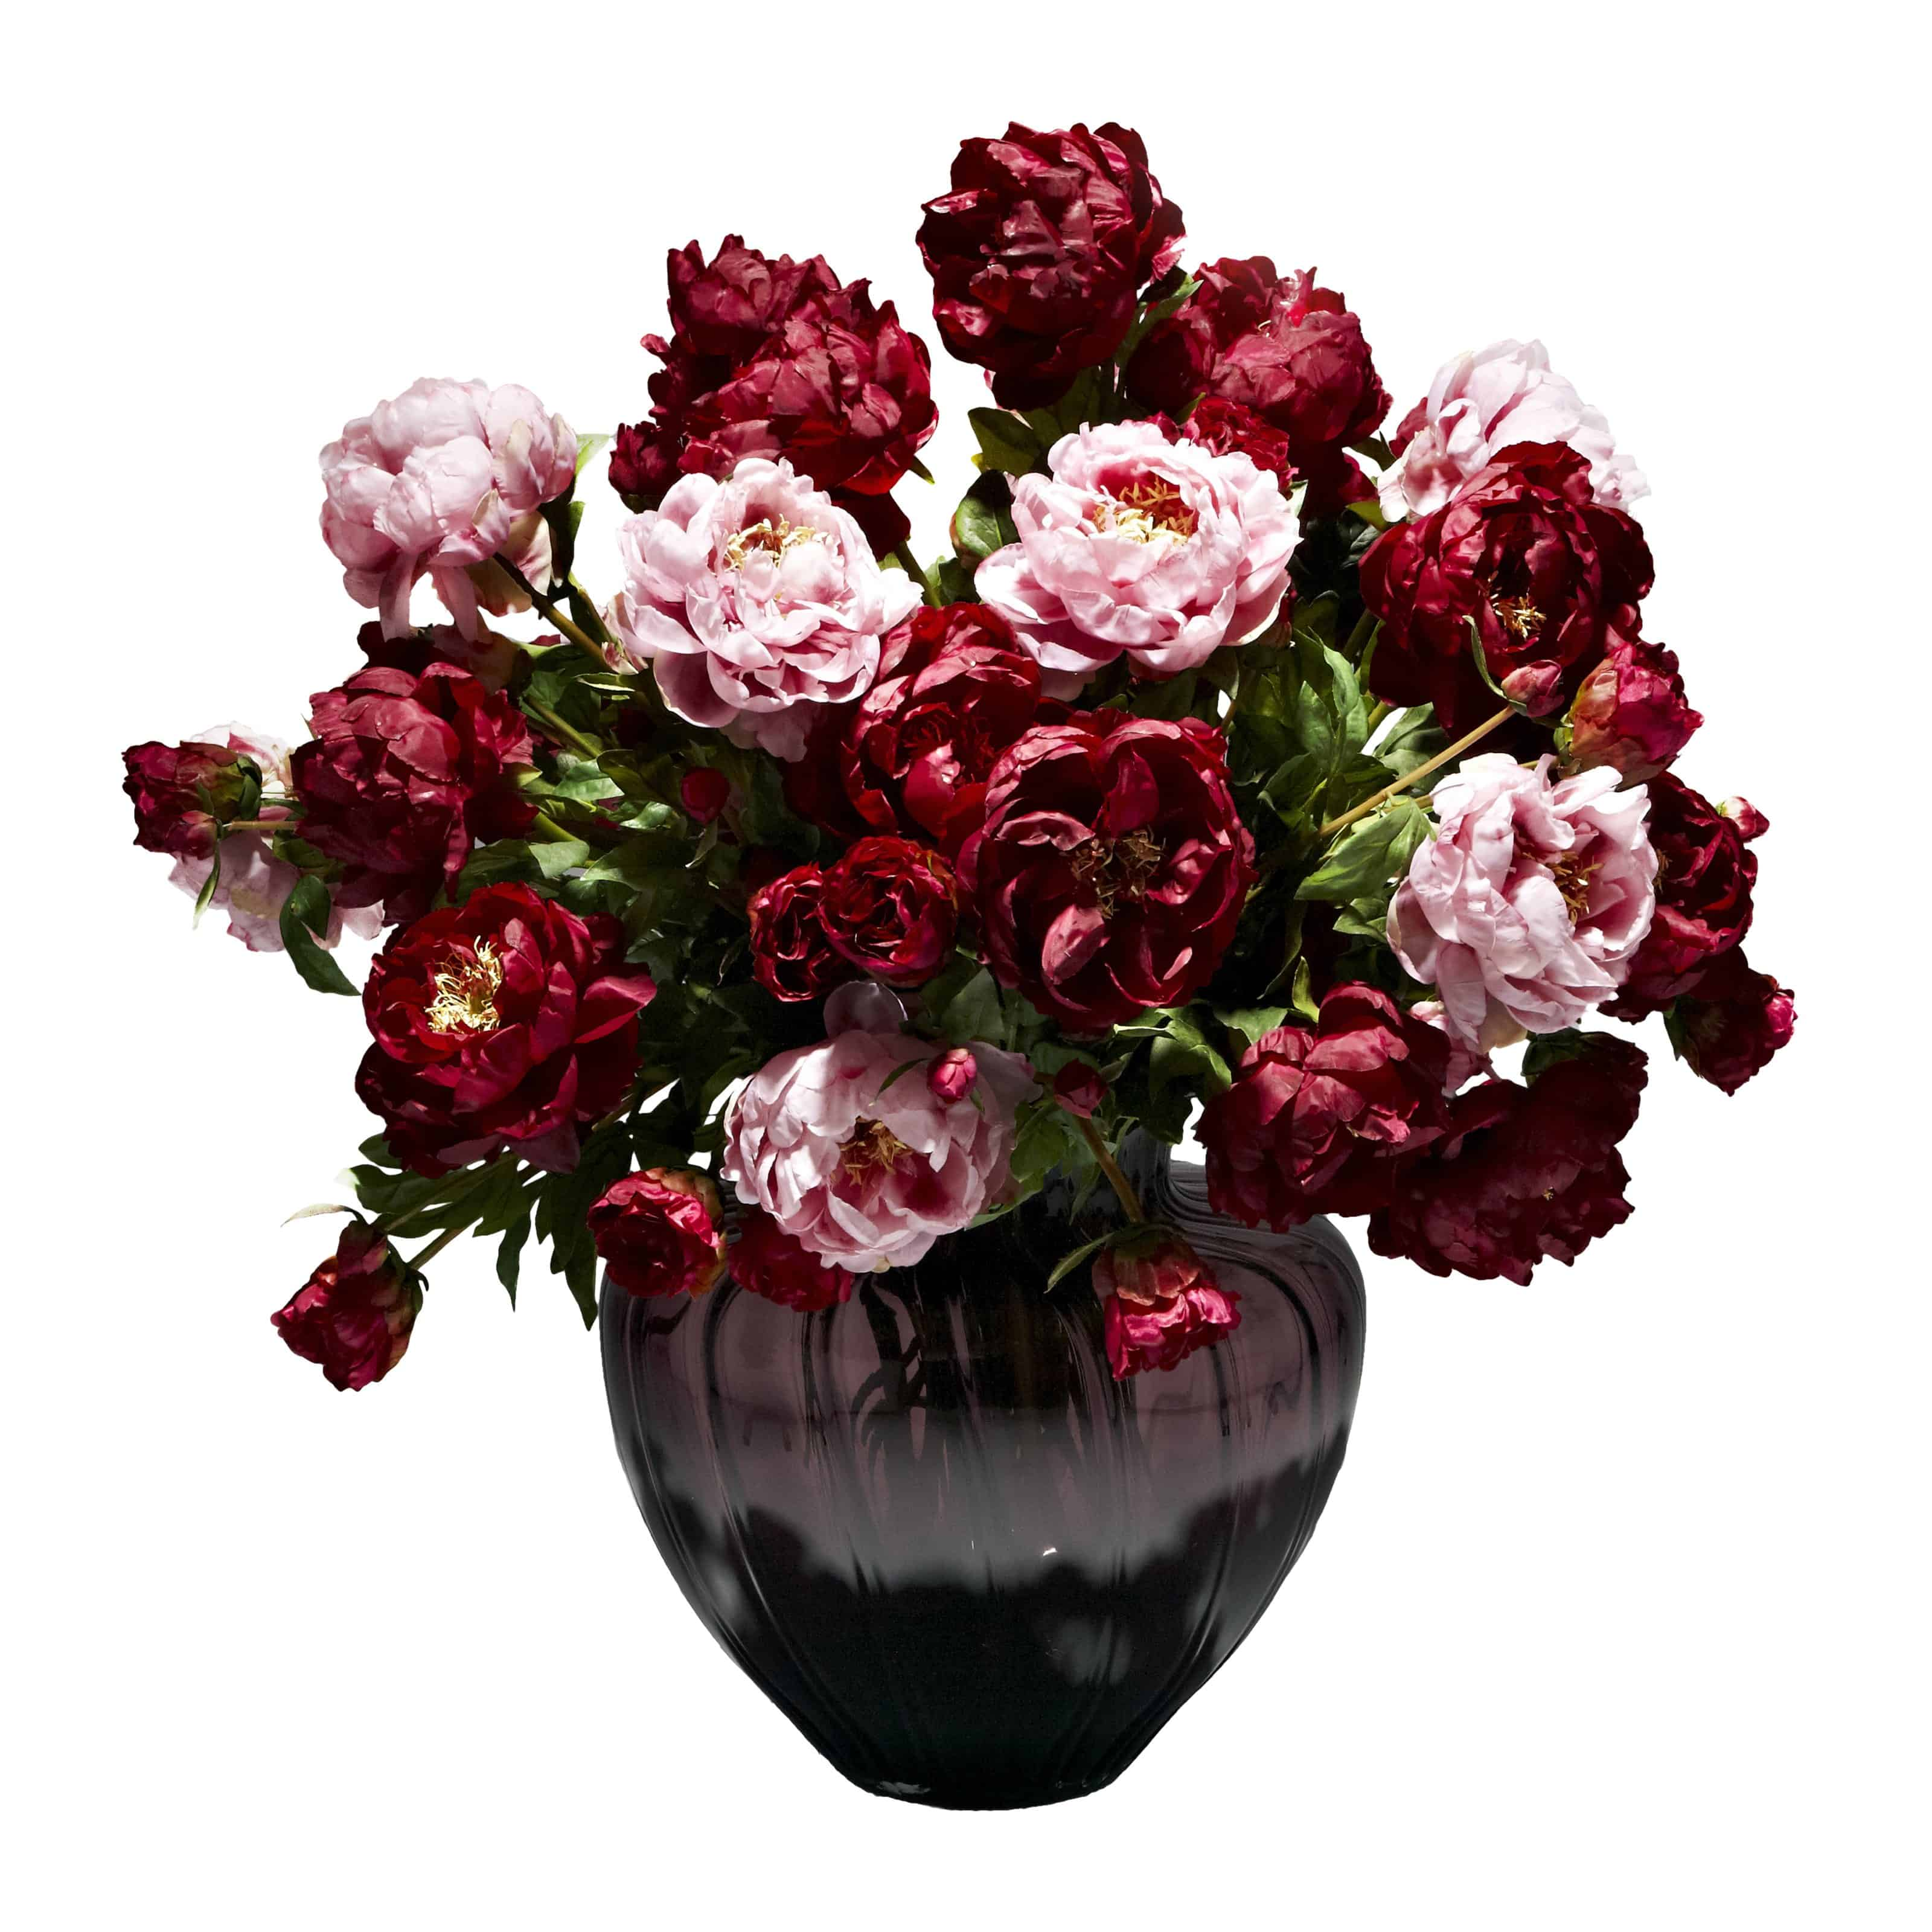 Shop for our lavish display of silk peony flowers in lavender and rich burgundy. Inspired by the paintings of extravagant blooms